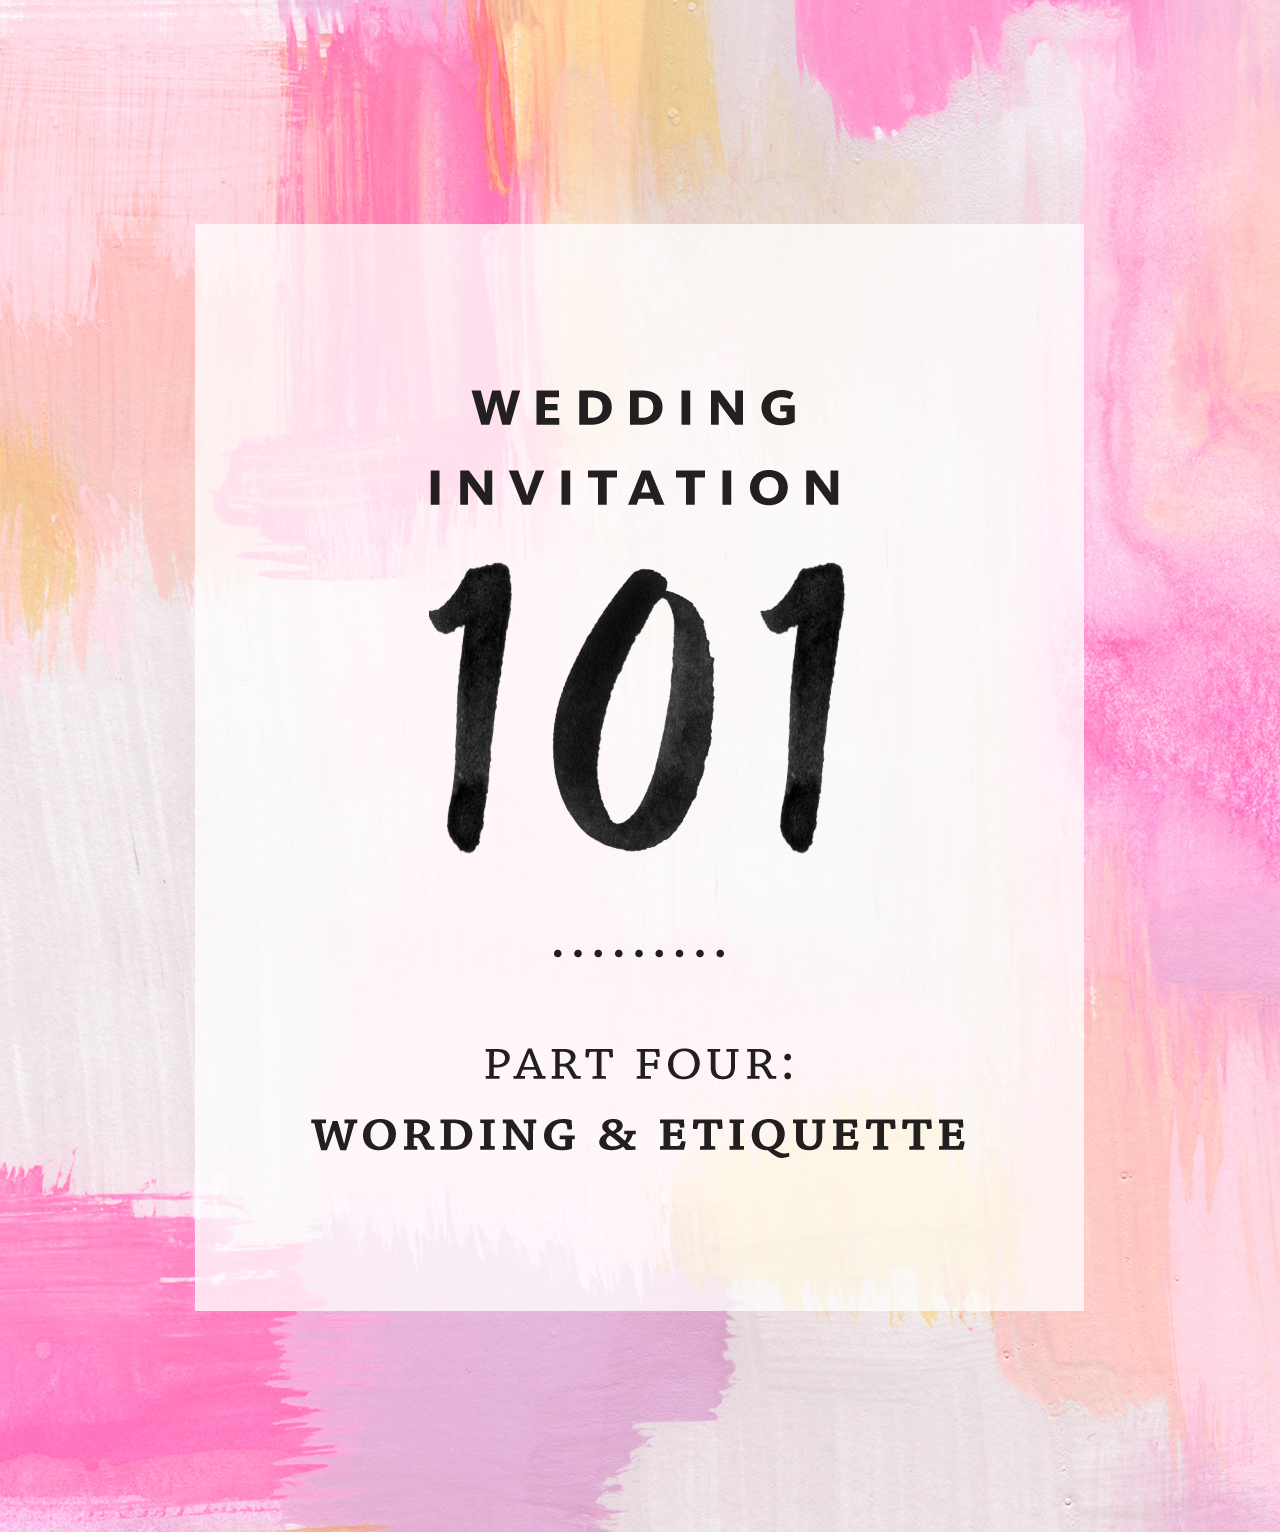 Wedding Invite Etiquette Wording: Wedding Invitation Wording And Etiquette